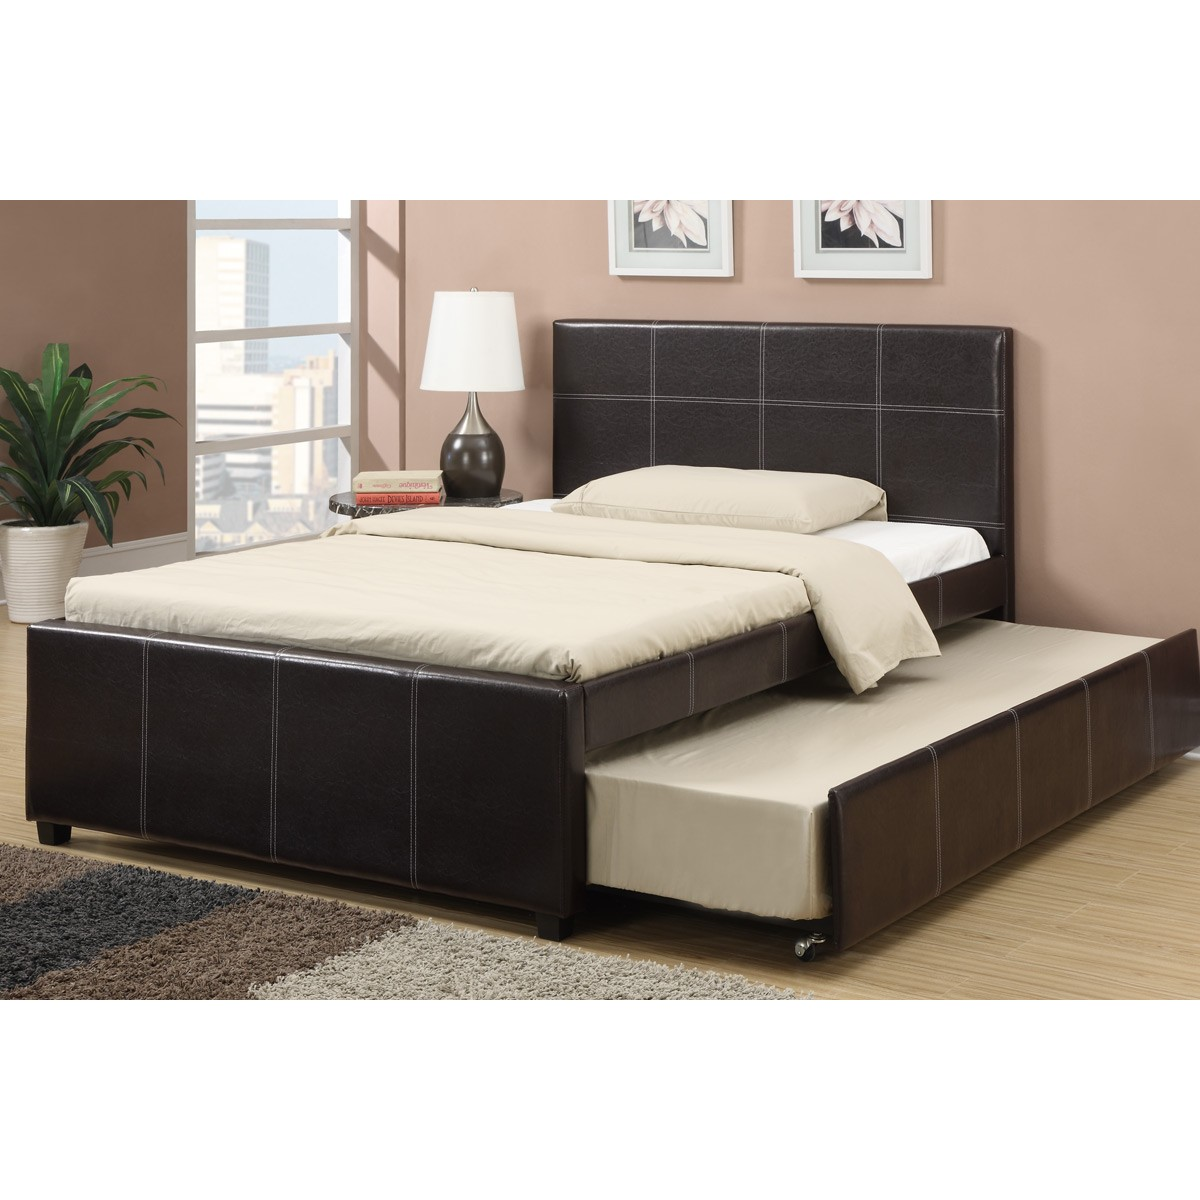 Espresso faux leather full size bed with twin size trundle Twin bed with mattress included